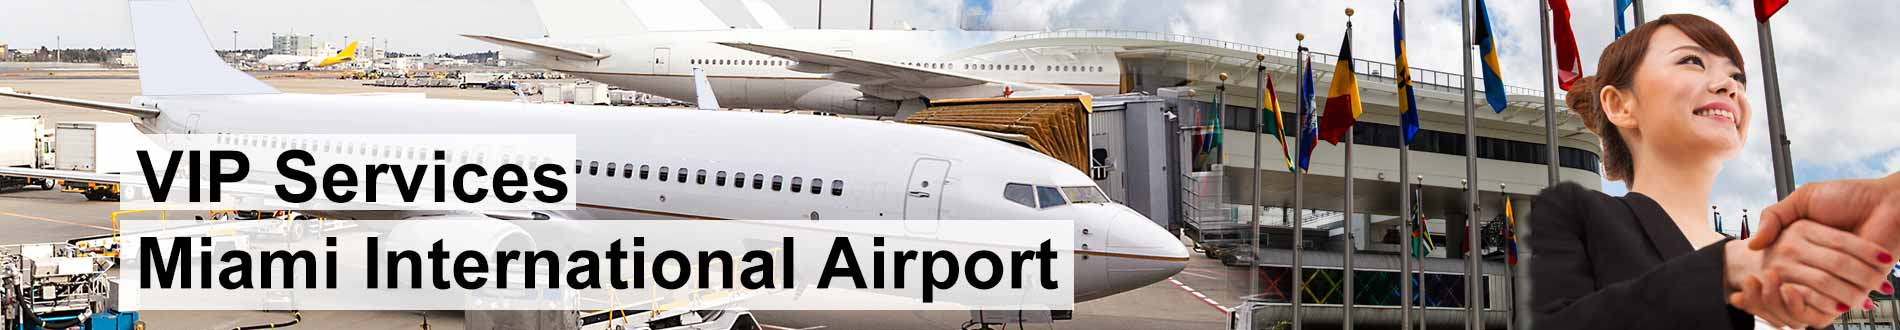 meet and assist airport